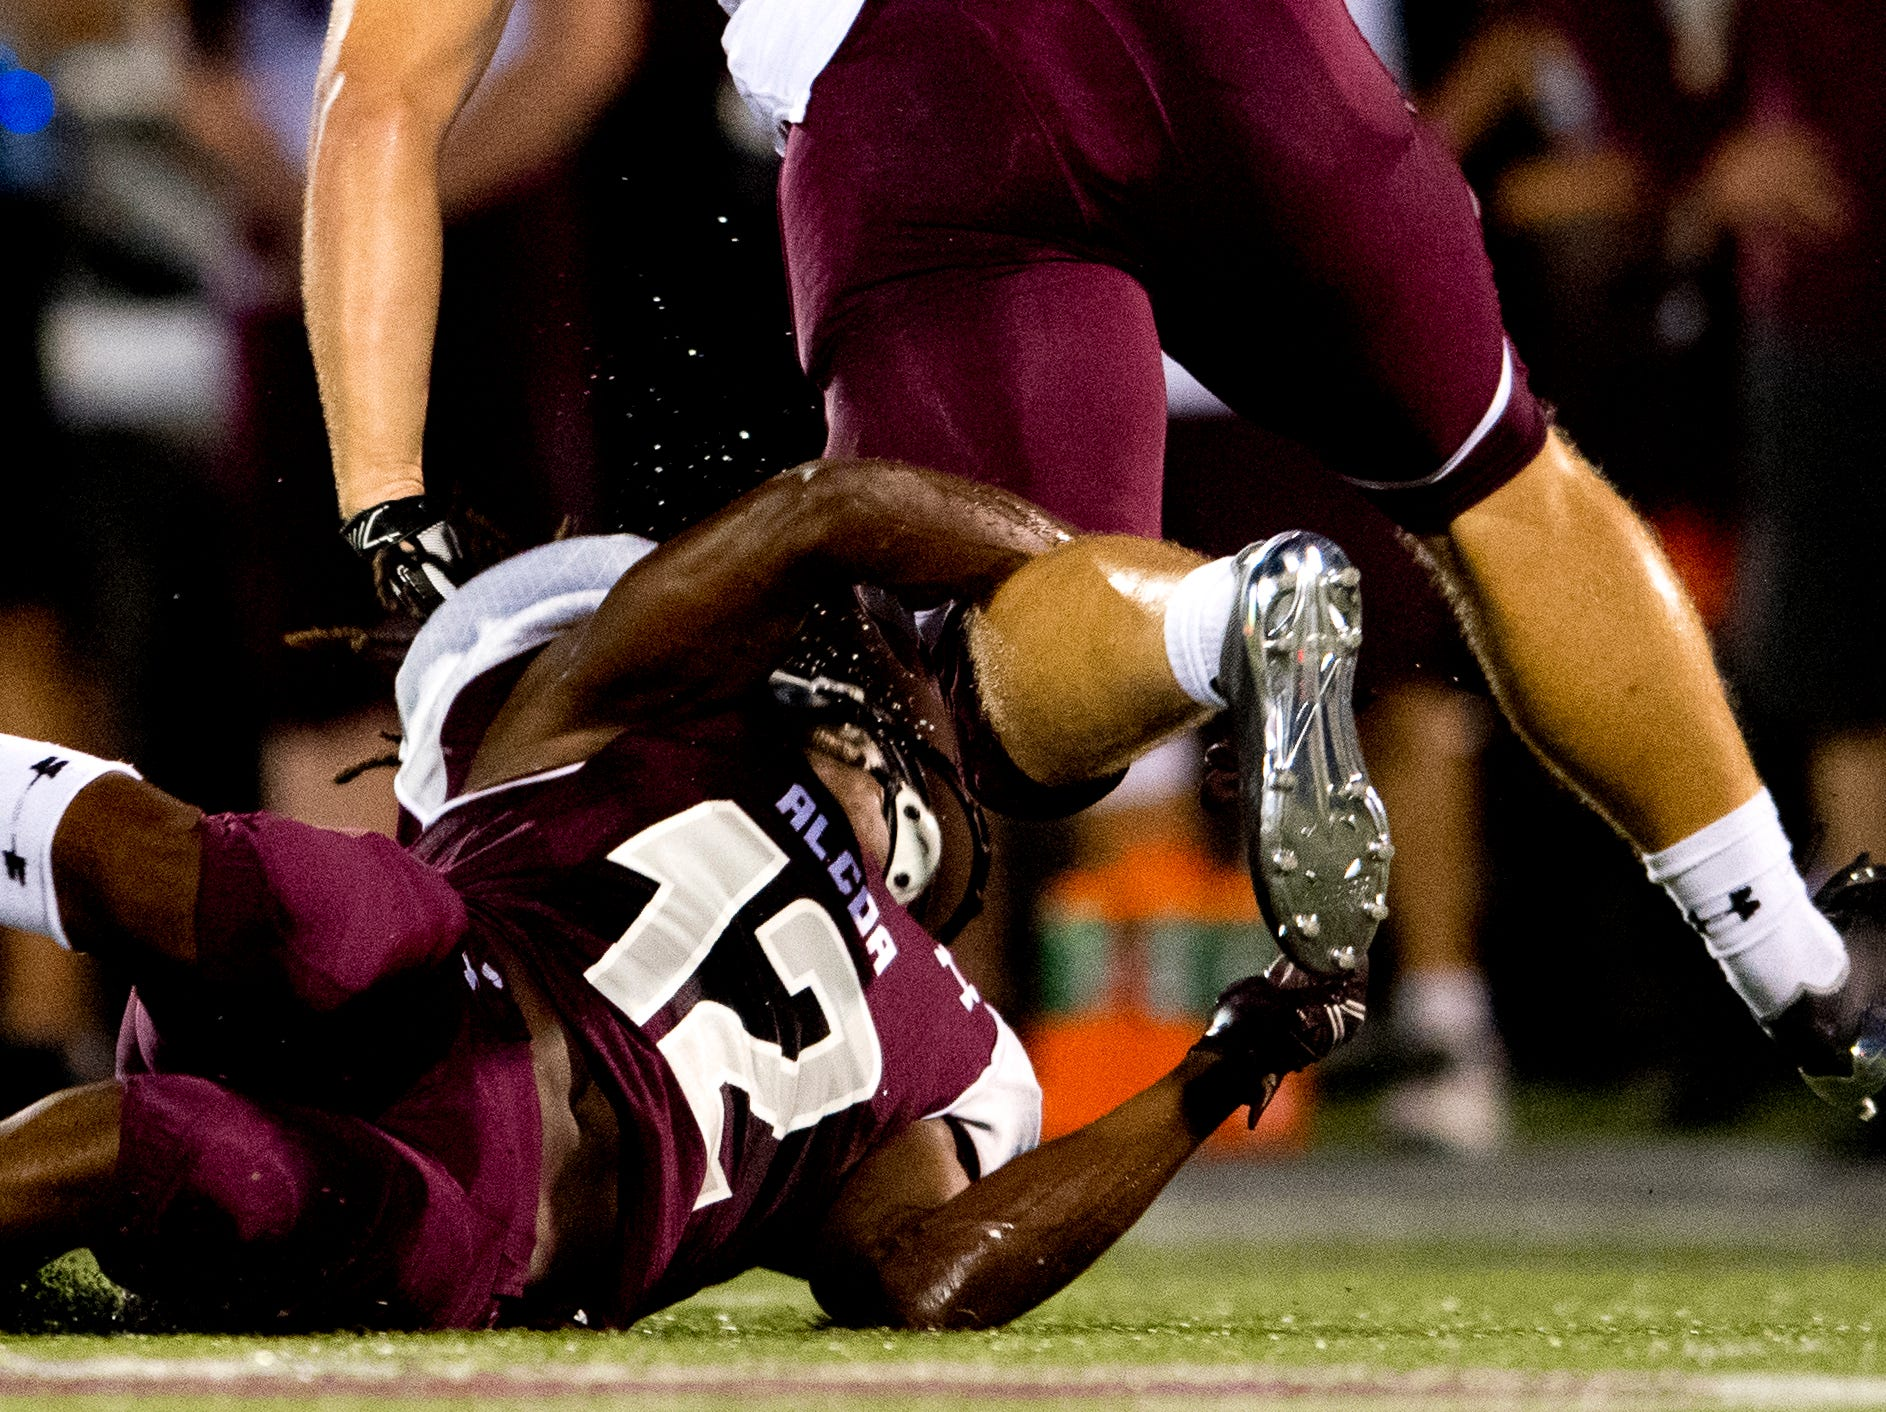 Alcoa's Isiah Cox (12) trips up a Dobyns-Bennett player during a game between Alcoa and Dobyns-Bennett at Alcoa High School in Alcoa, Tennessee on Friday, September 21, 2018.